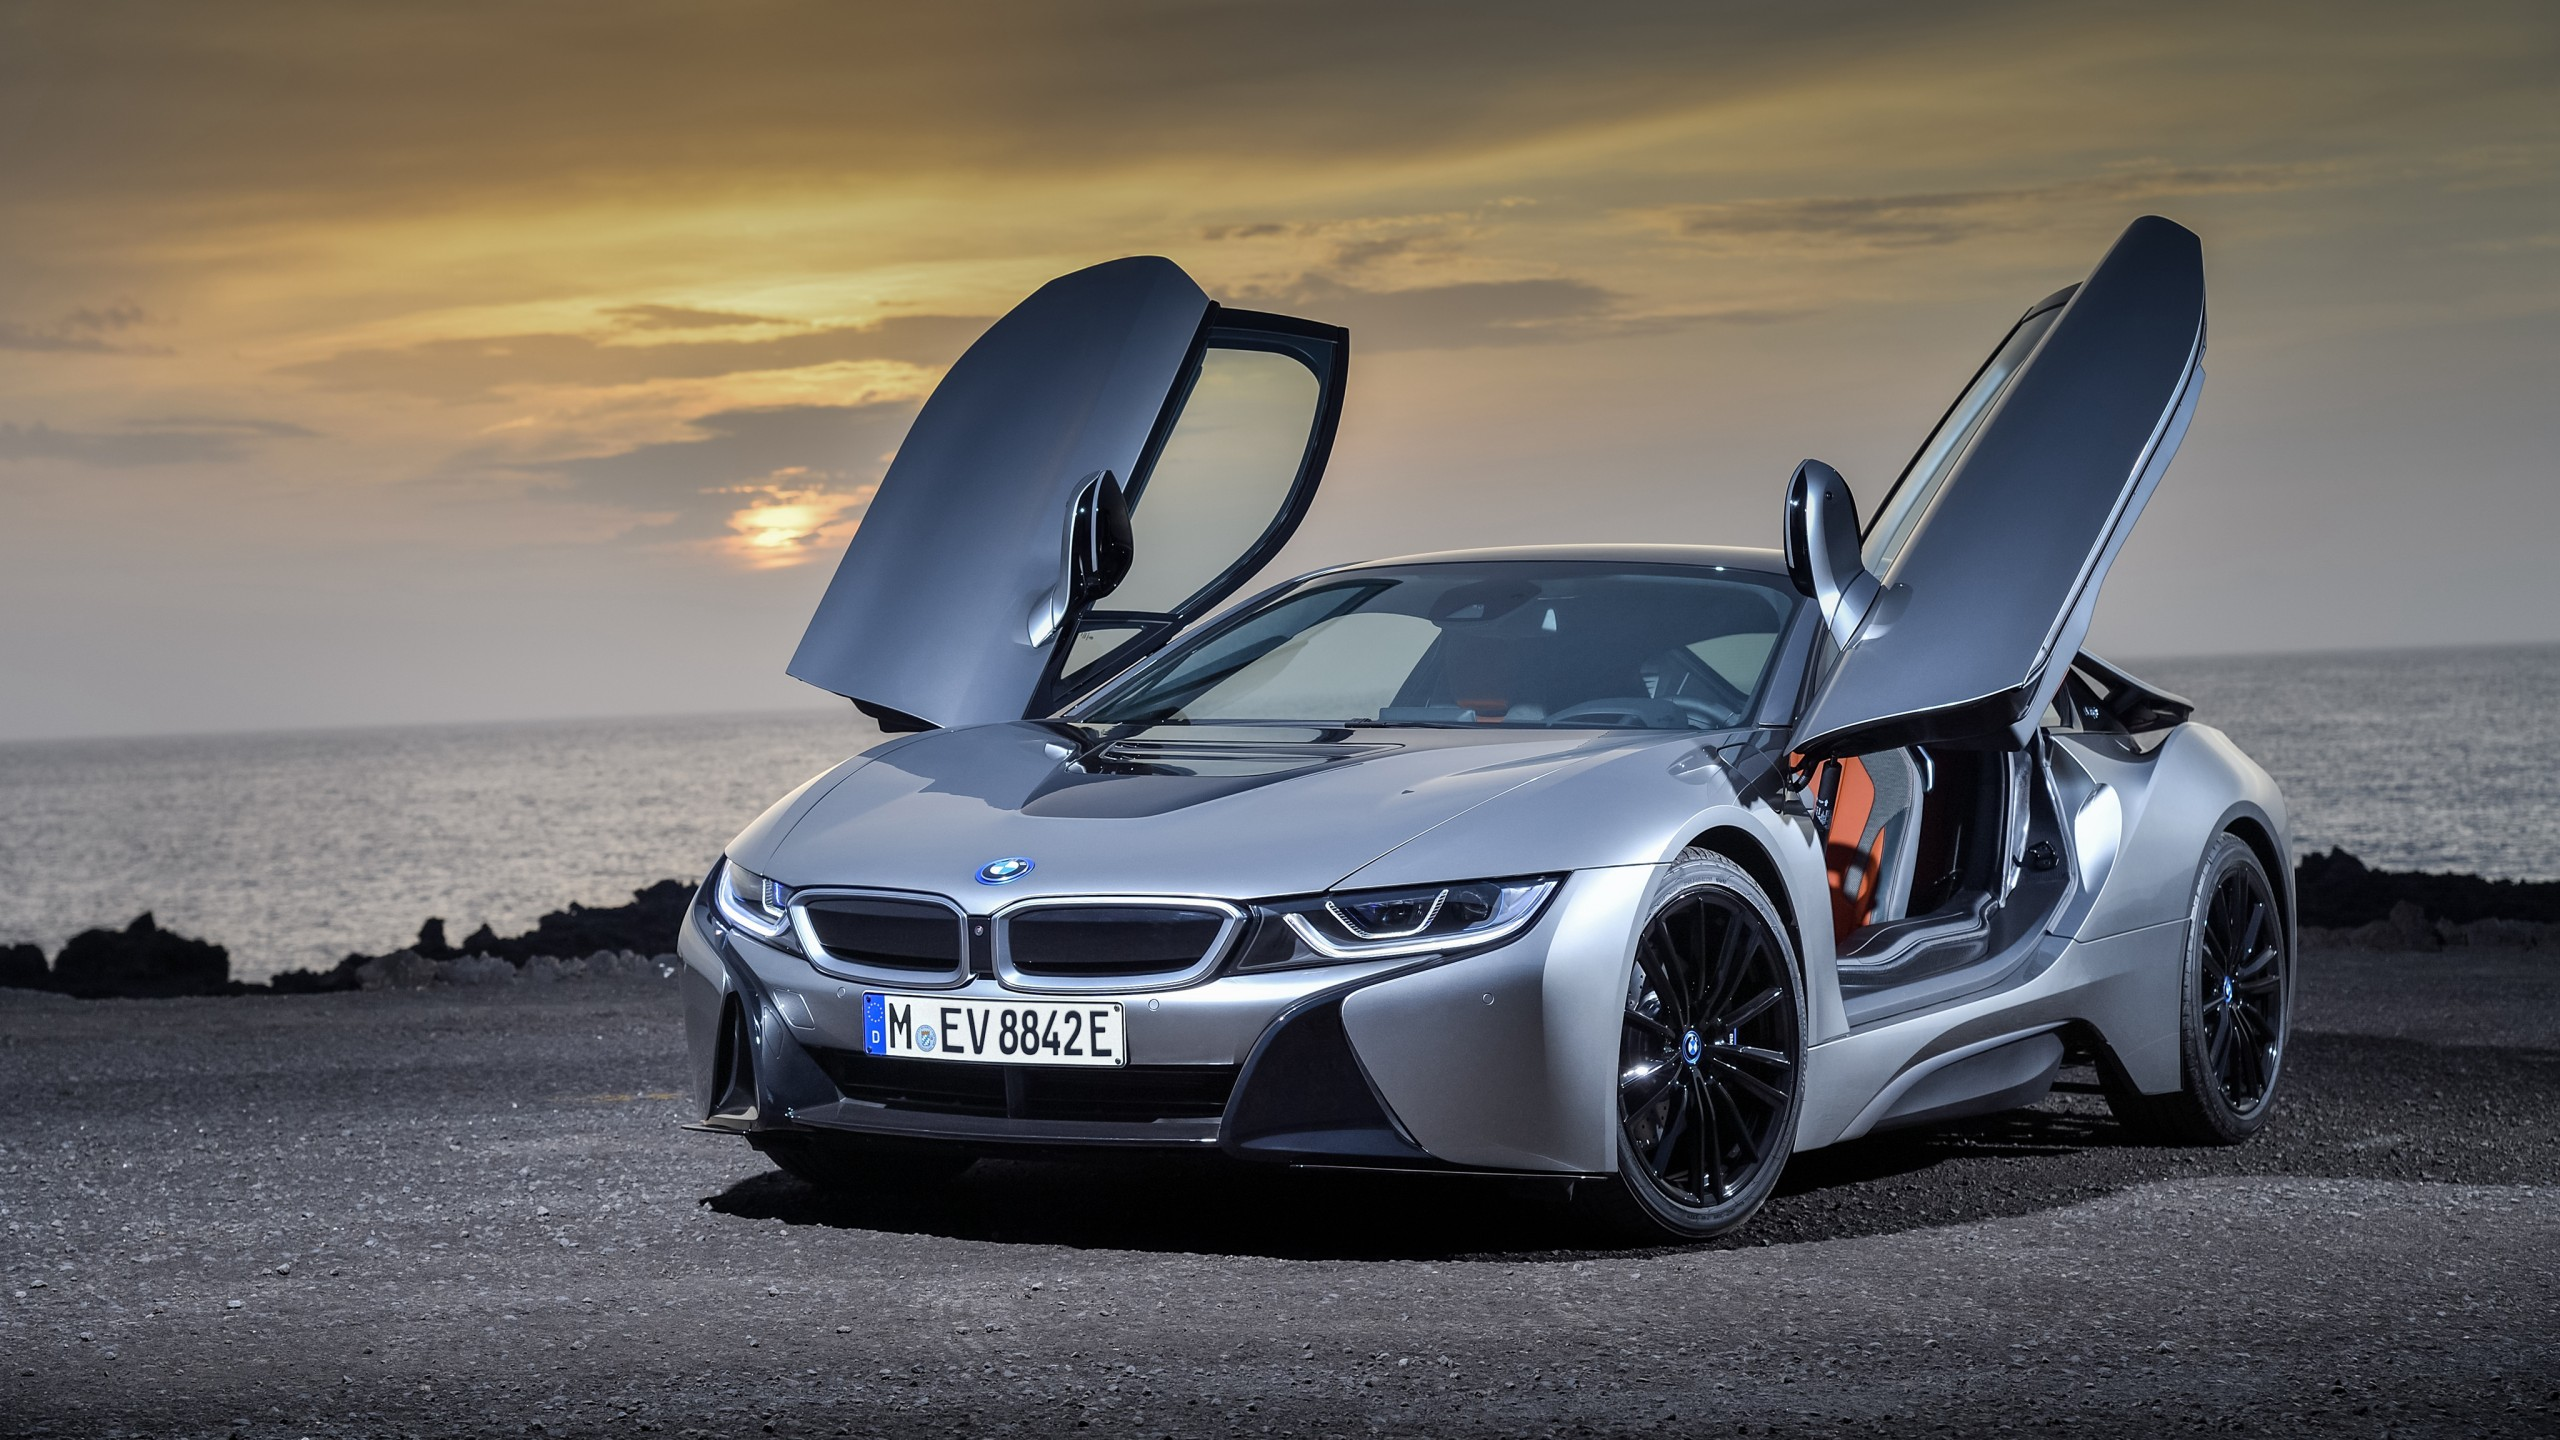 2018 BMW i8 Coupe 4K Wallpaper | HD Car Wallpapers | ID #9191